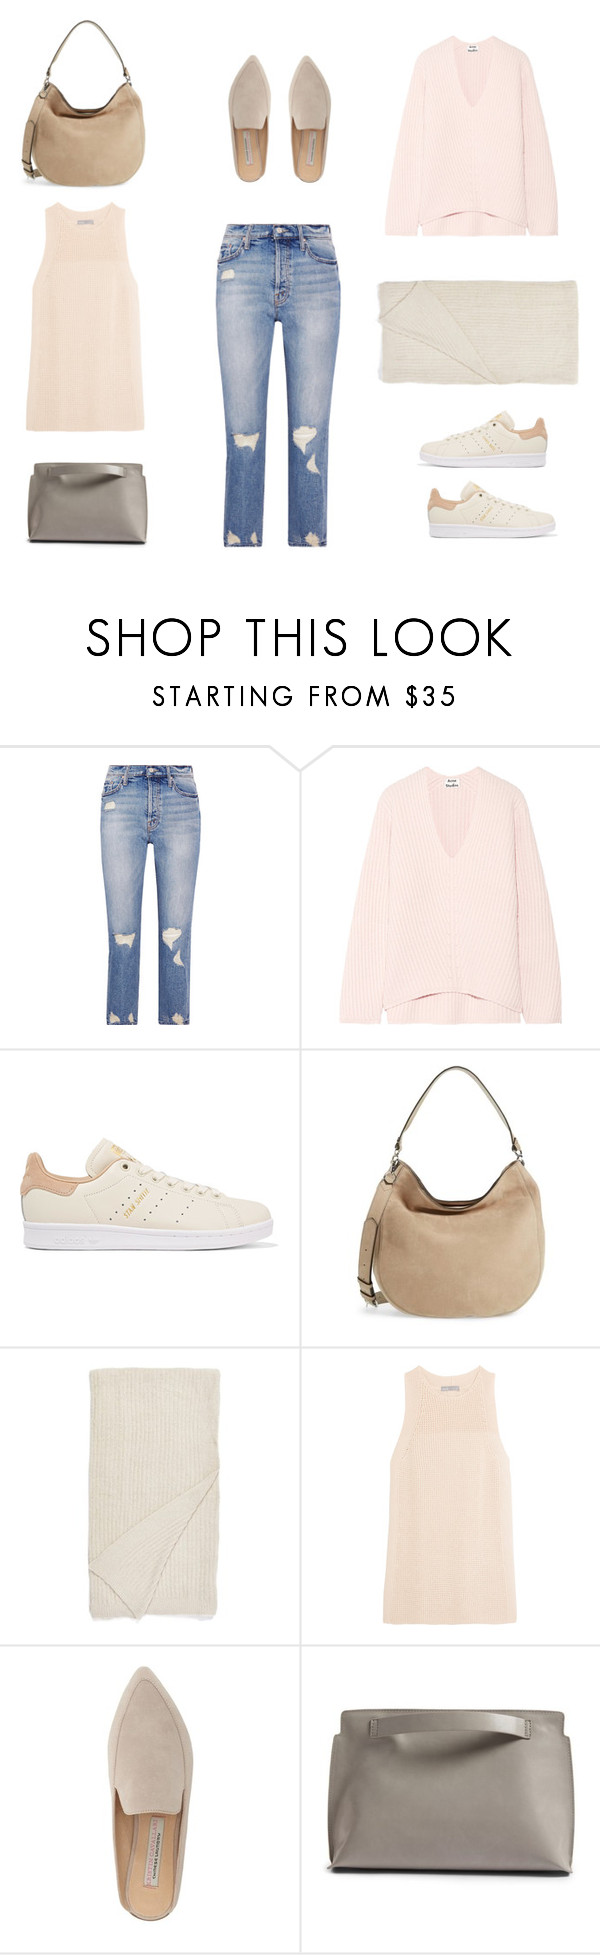 """""""untitled"""" by sarahswansondesign ❤ liked on Polyvore featuring Mother, Acne Studios, adidas Originals, Rebecca Minkoff, Barefoot Dreams, Vince, Kristin Cavallari and BP."""